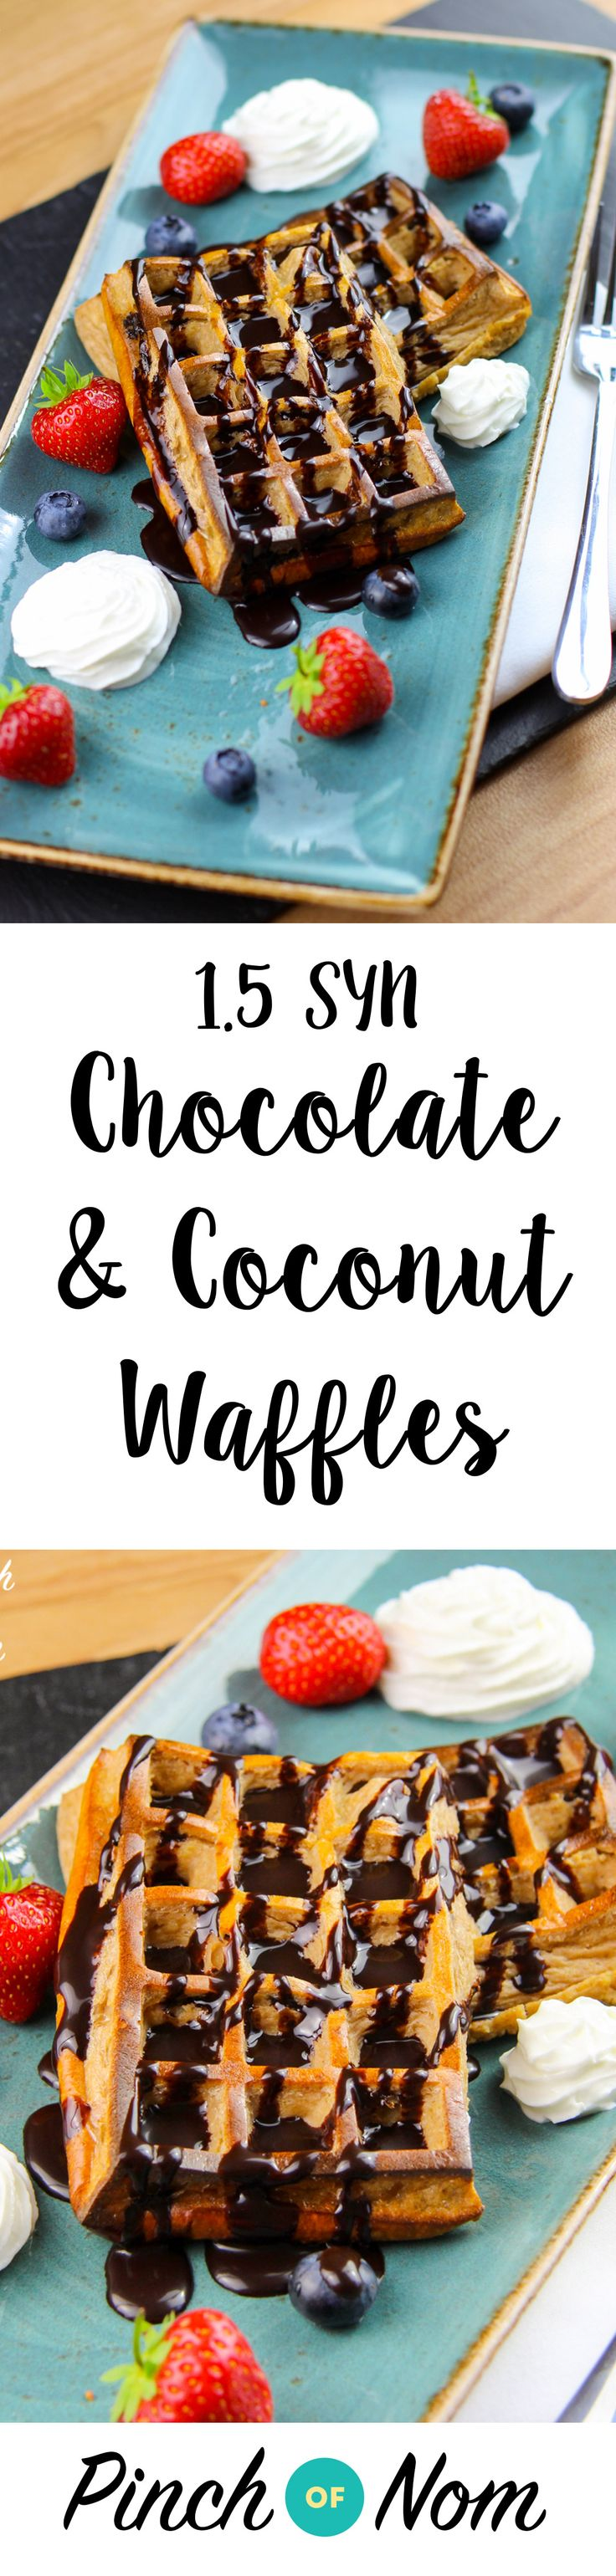 You're Going To Want To Make Love To These  1.5 Syn Chocolate & Coconut Waffles | pinchofnom.com